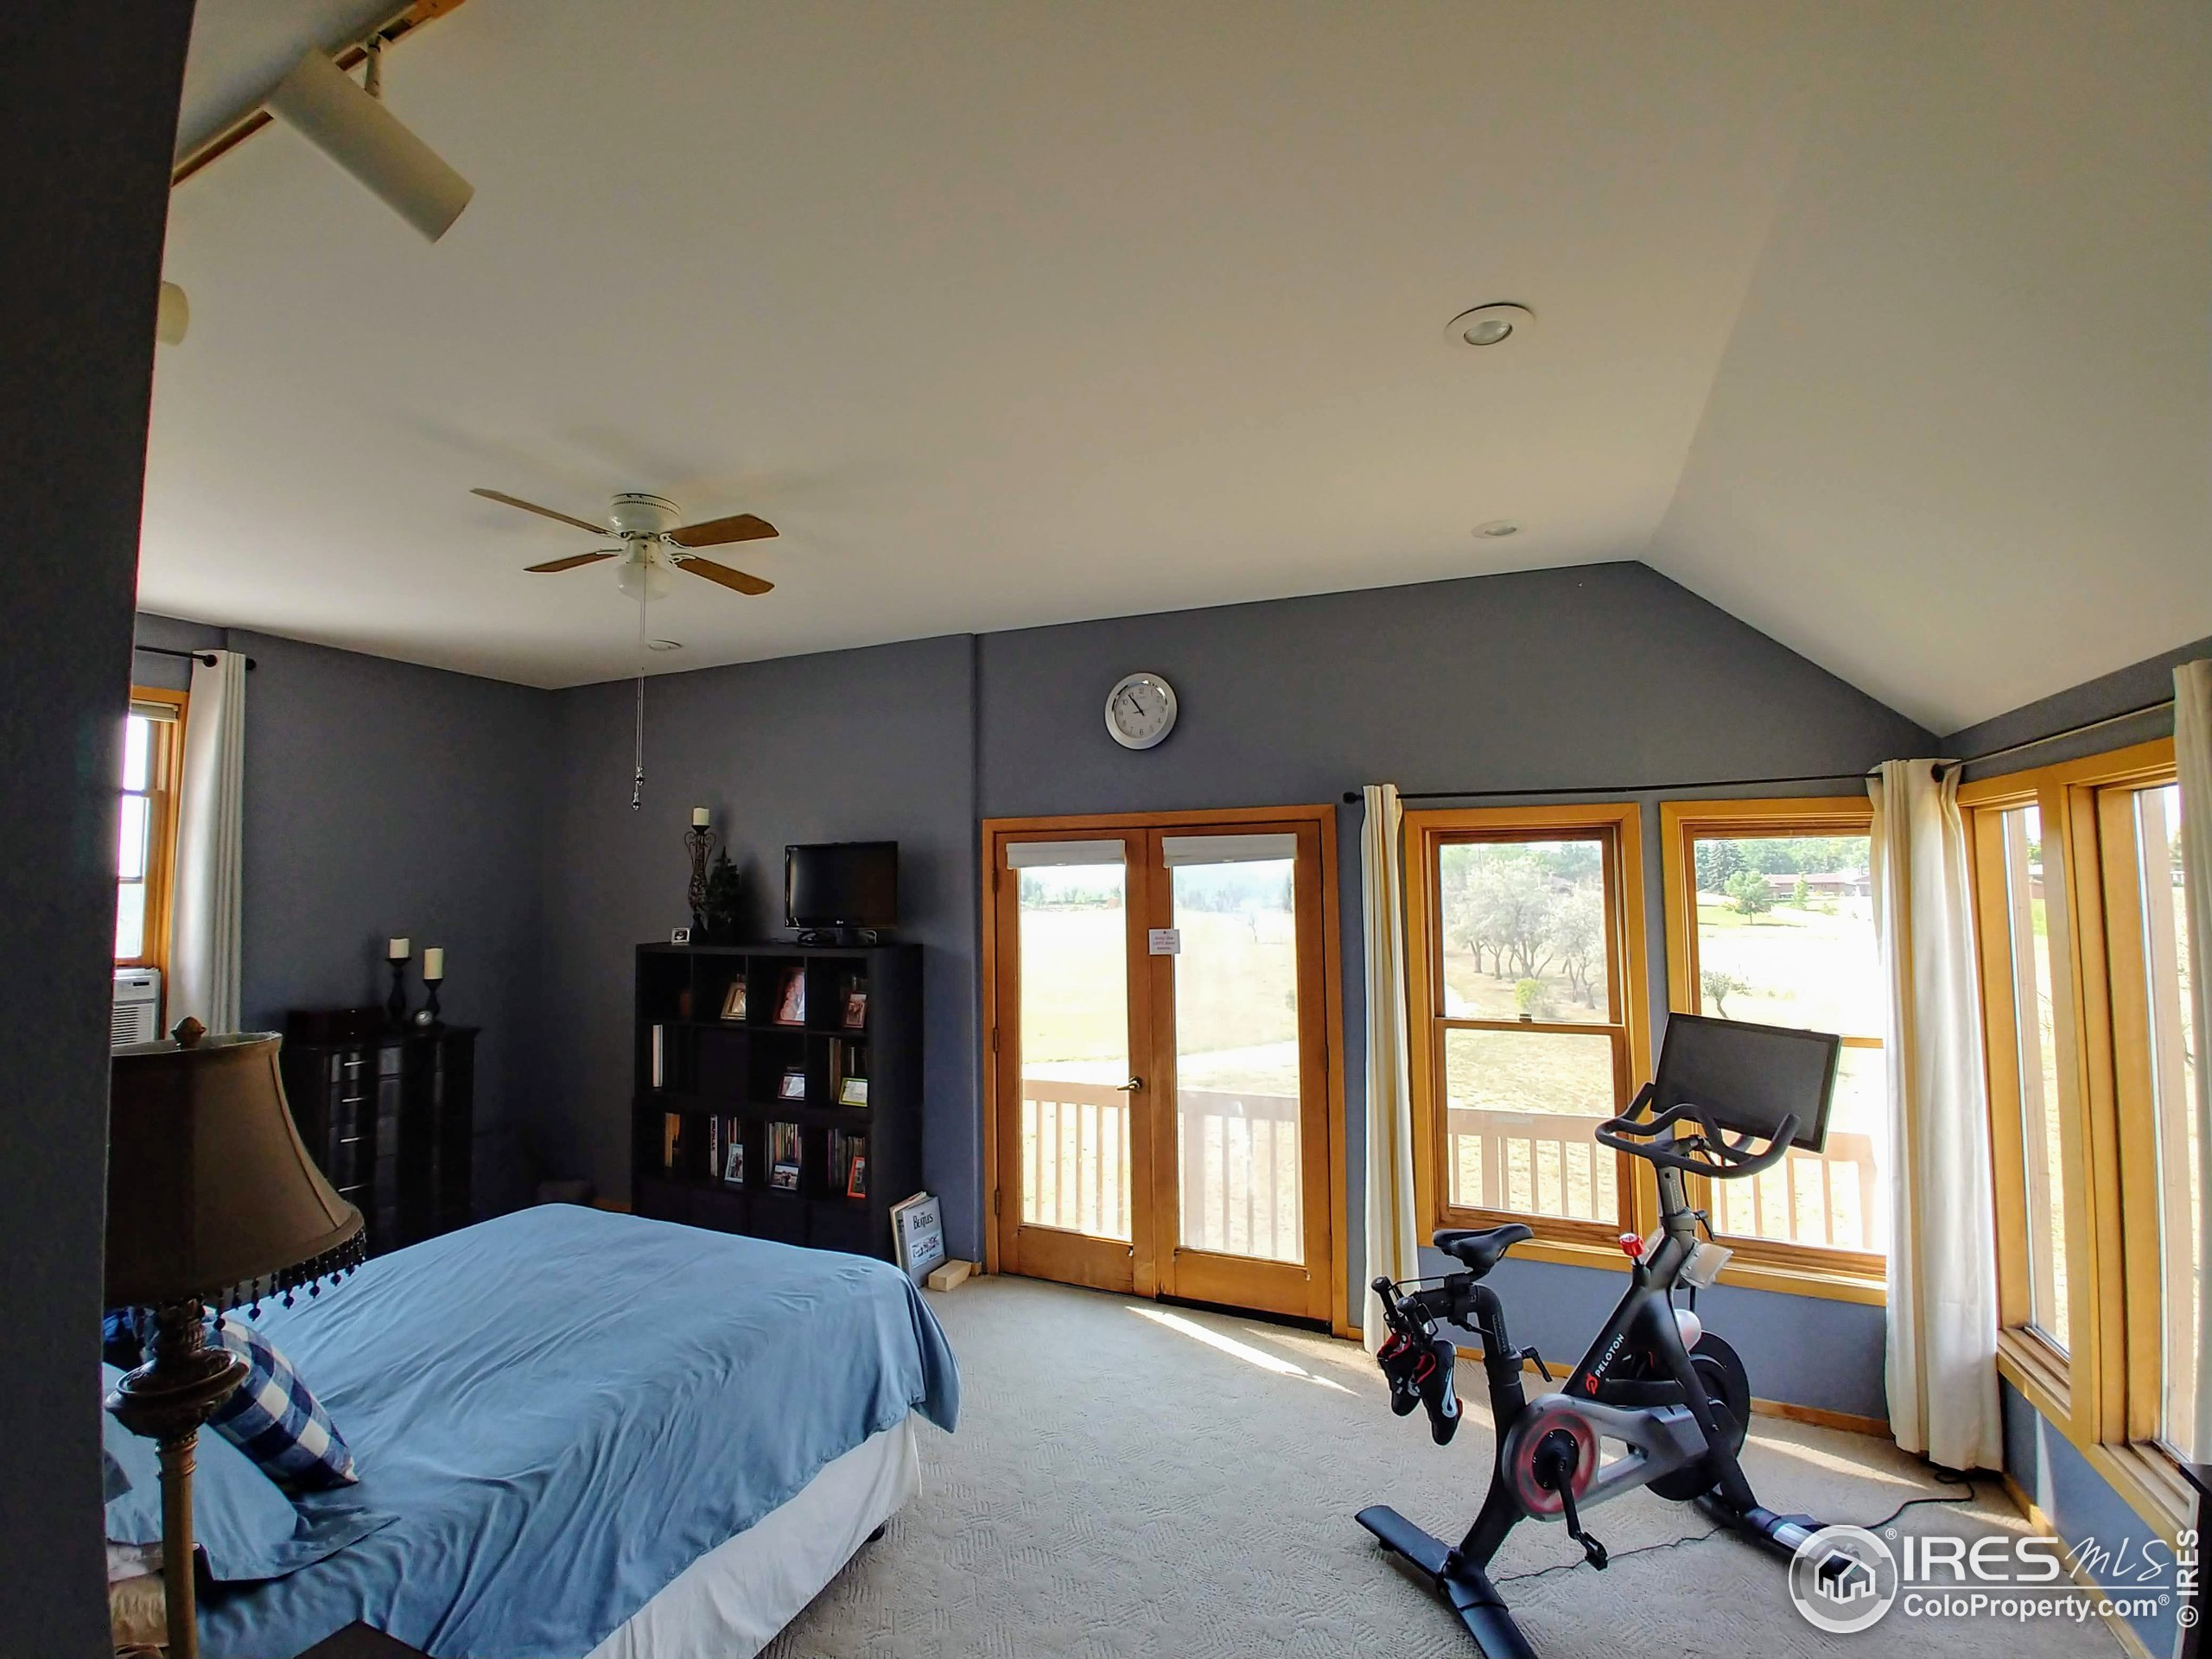 MBR from entry. 10' ceilings throughout upper level.